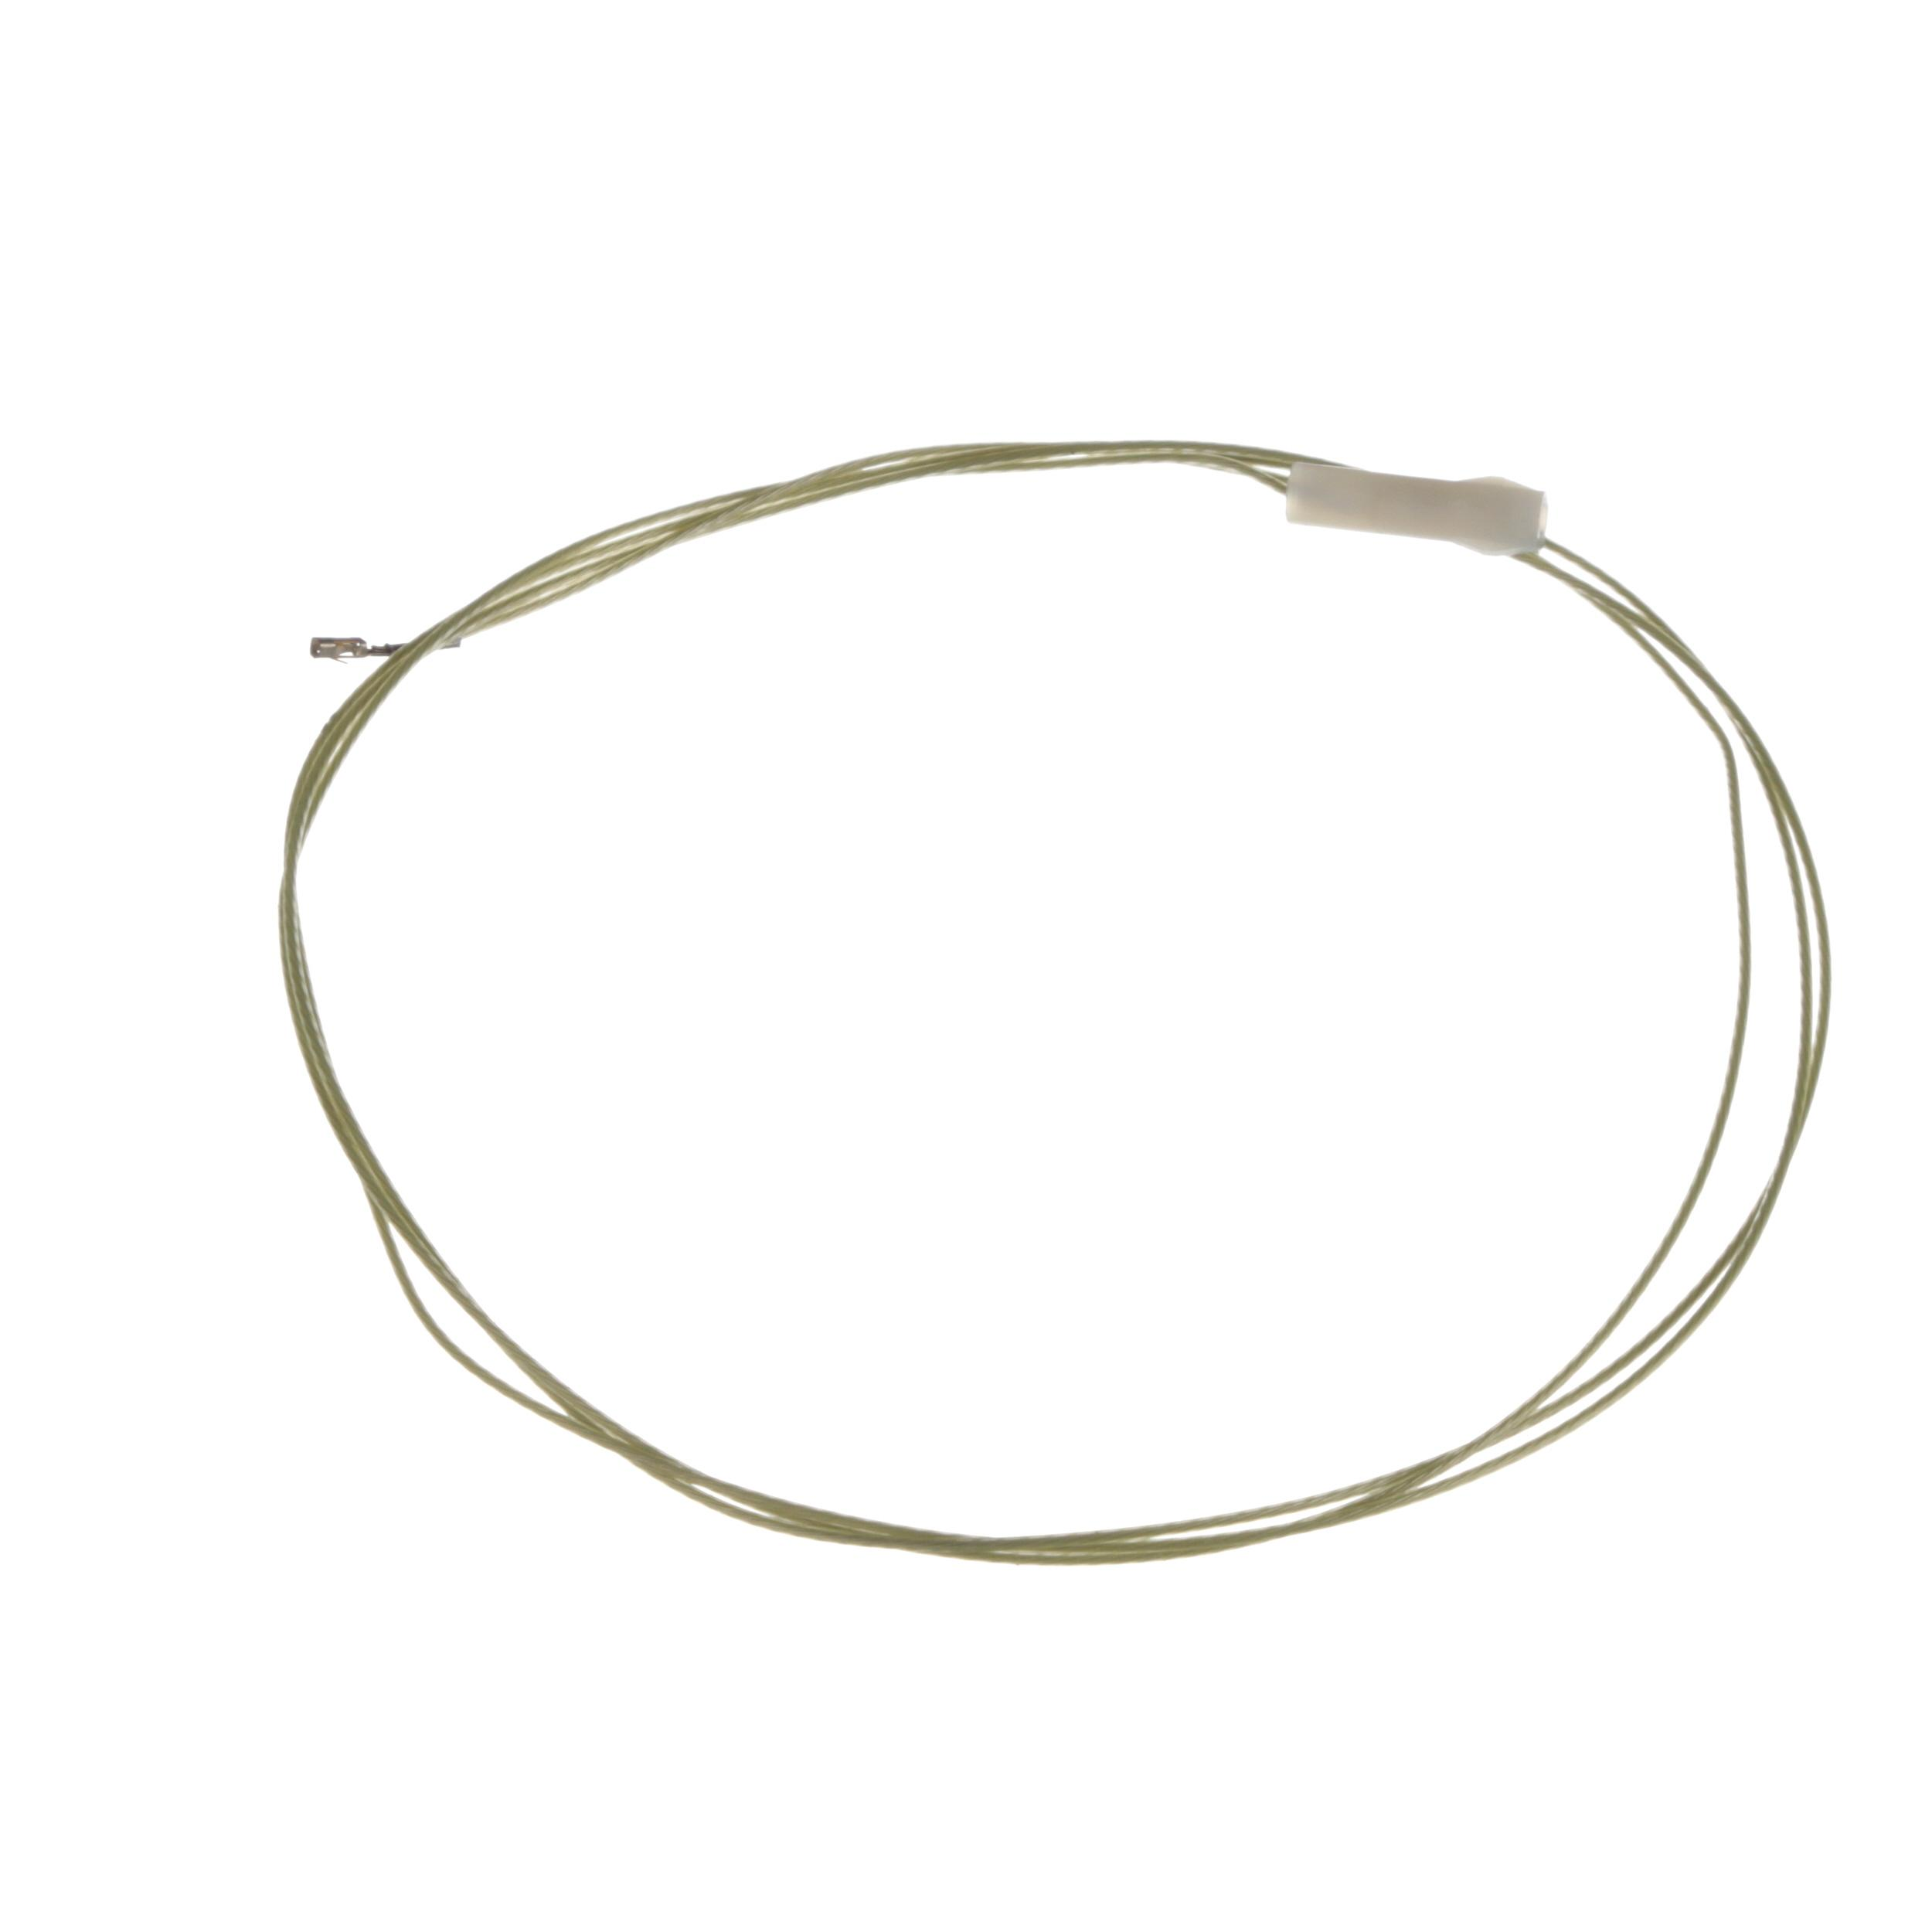 Thermocouple Wire Manufacturers : Turbochef thermocouple wire left side part ngc